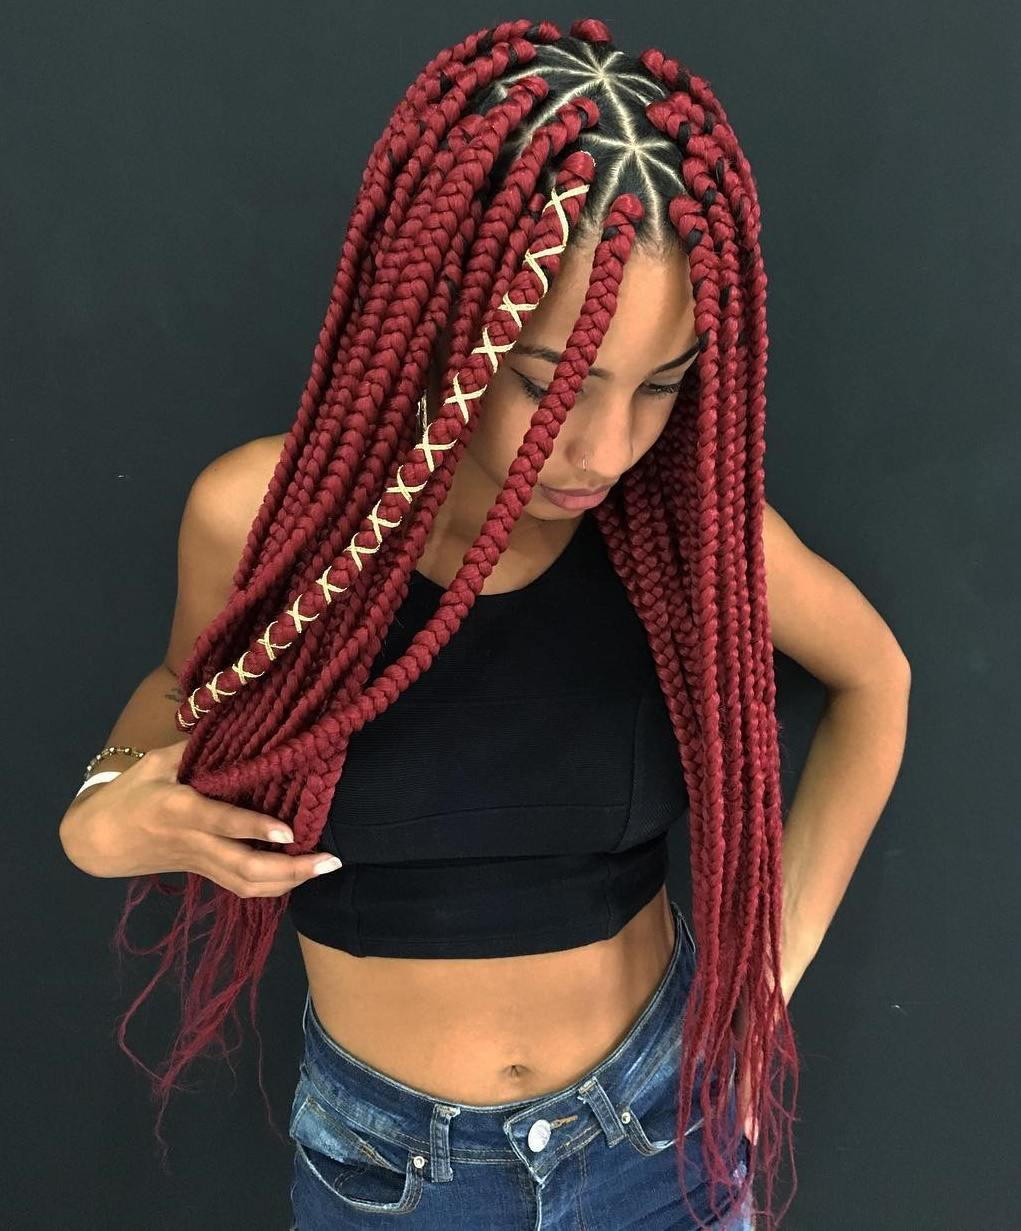 Jumbo-Red-Poetic-Justice-Braid Poetic Justice Braids to Flaunt Your Fabulous Look